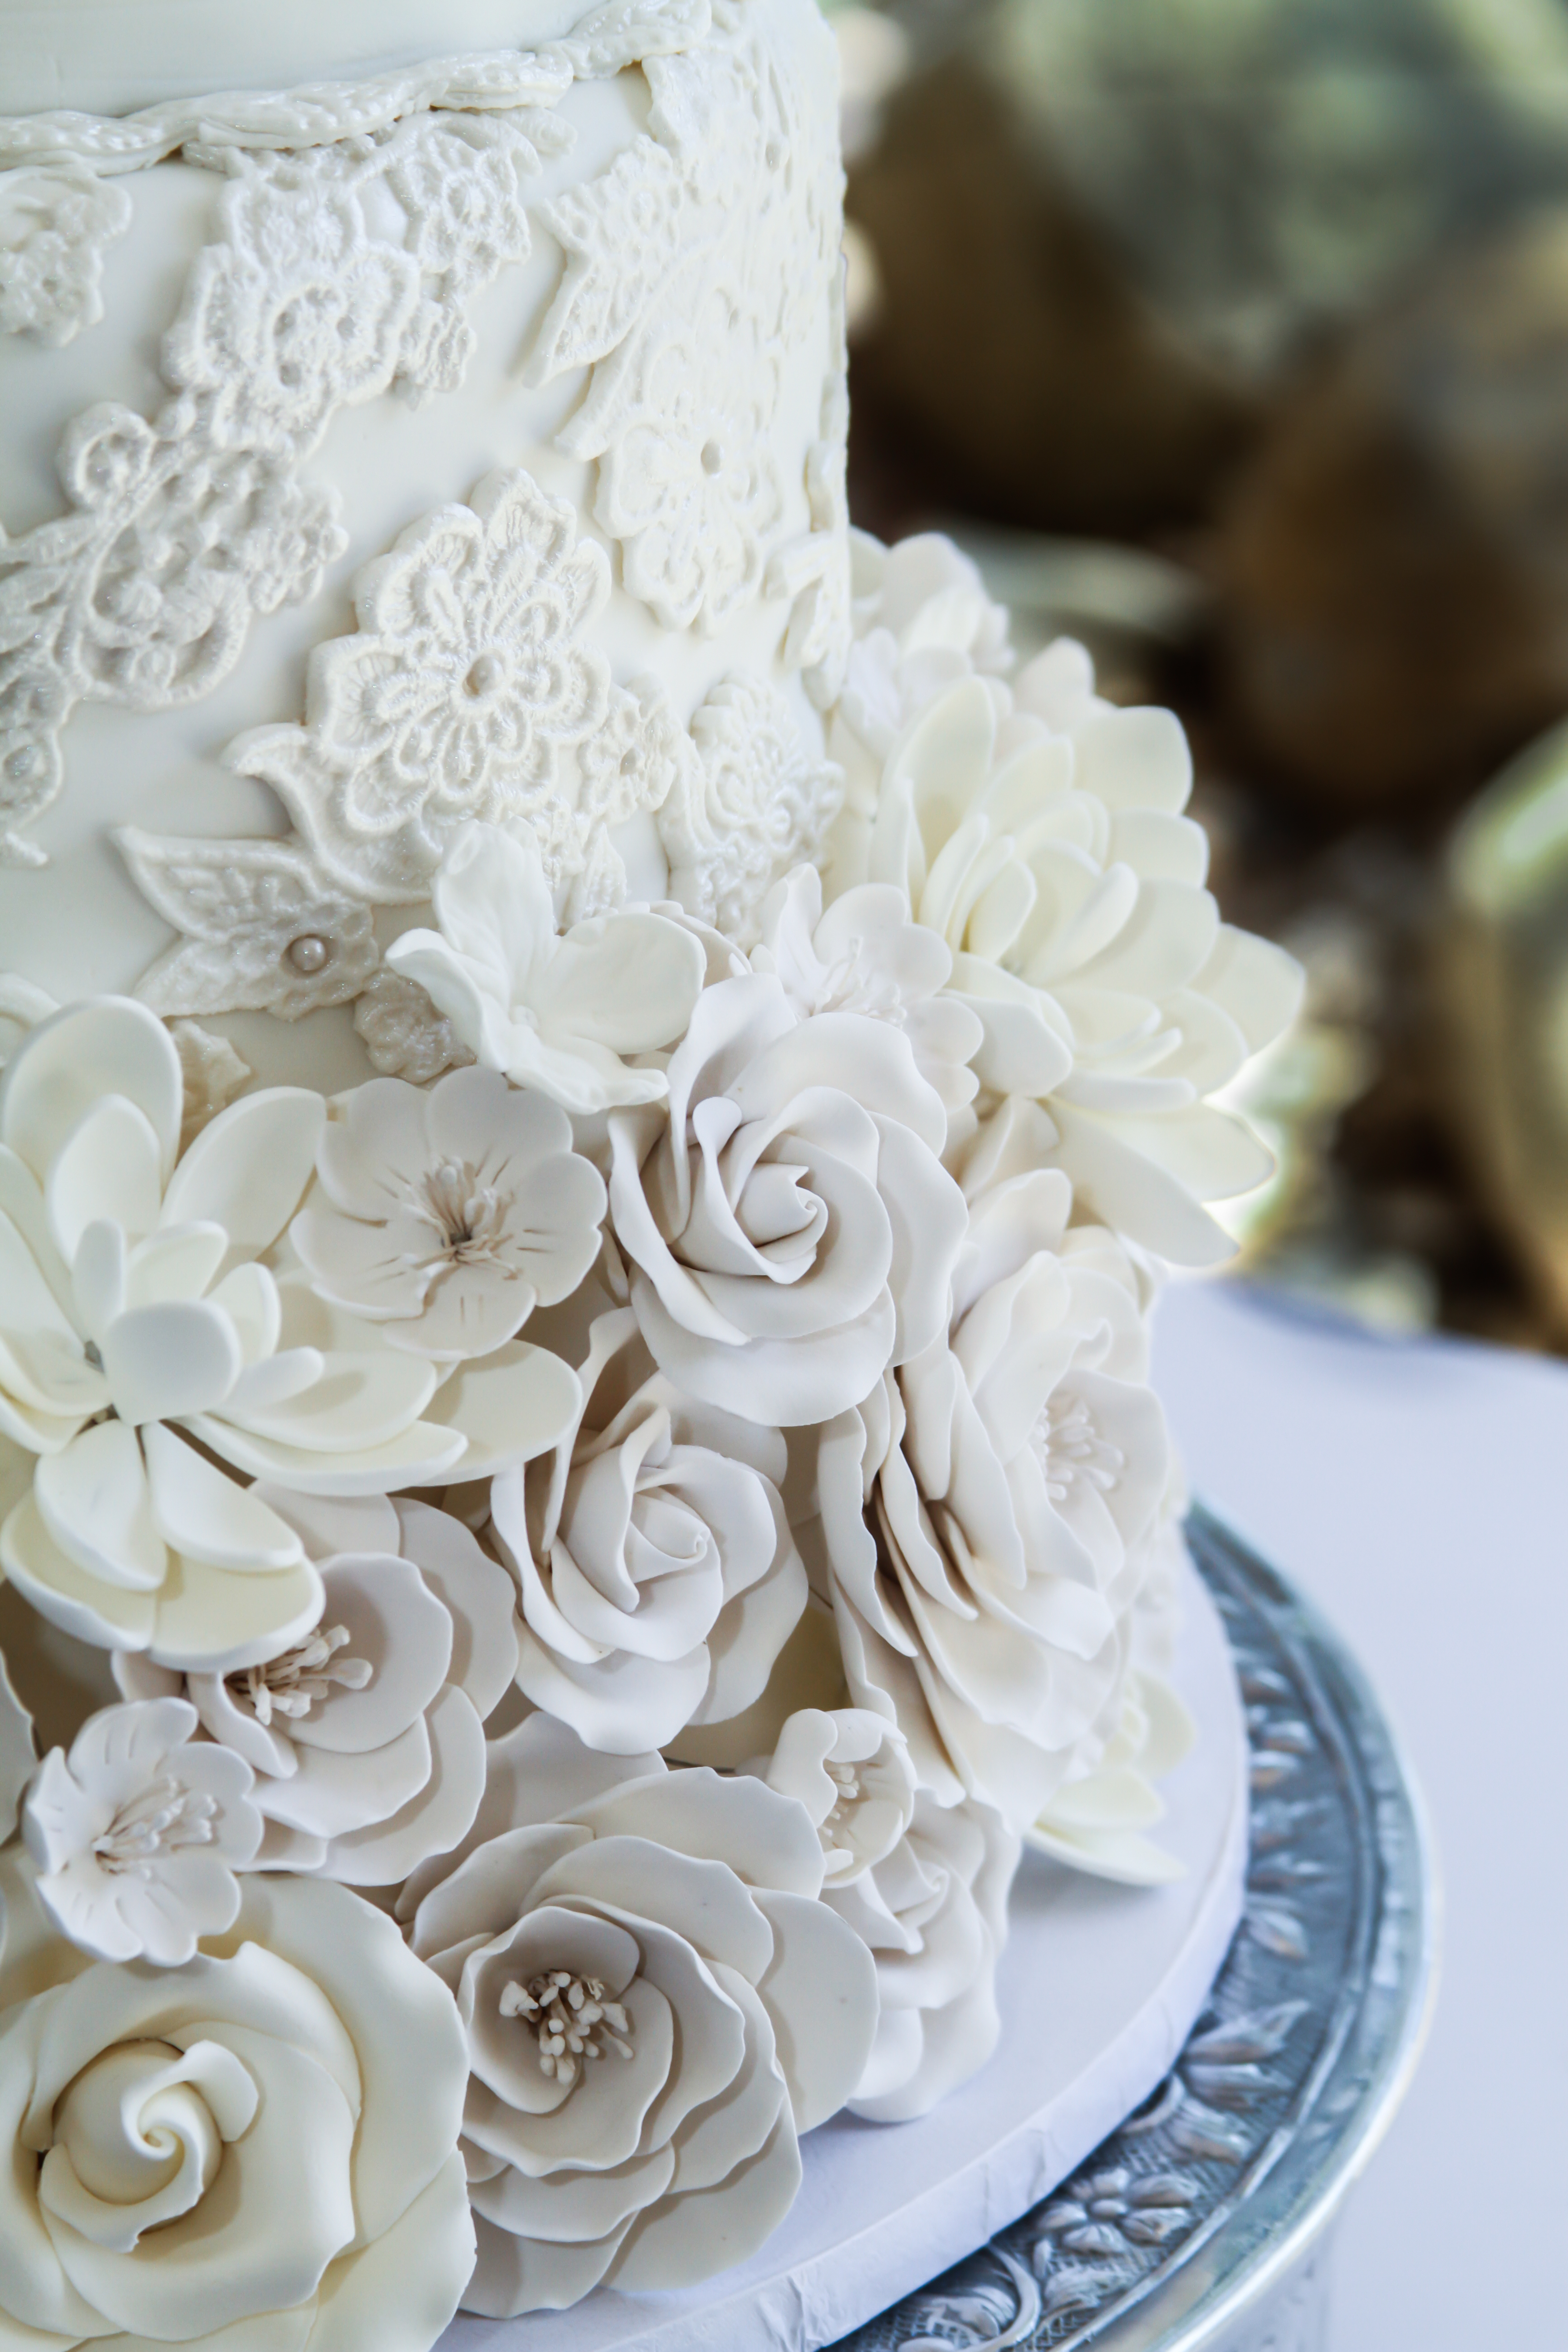 Details of Christa & Courtney's Cake